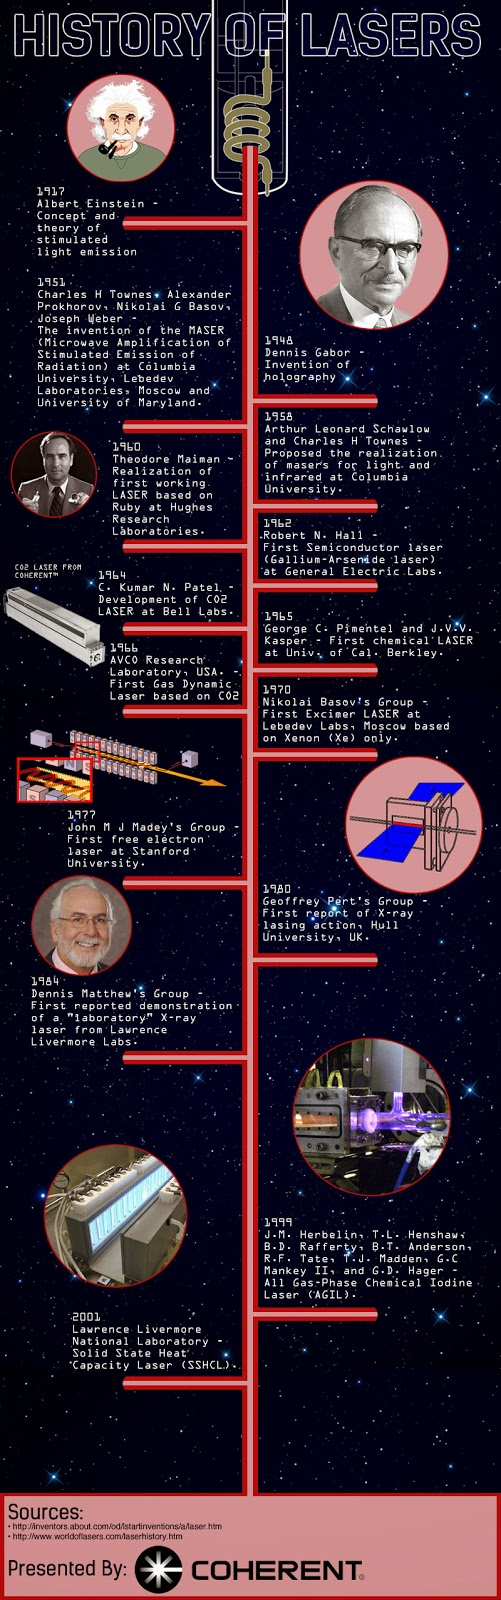 History of Laser Technology